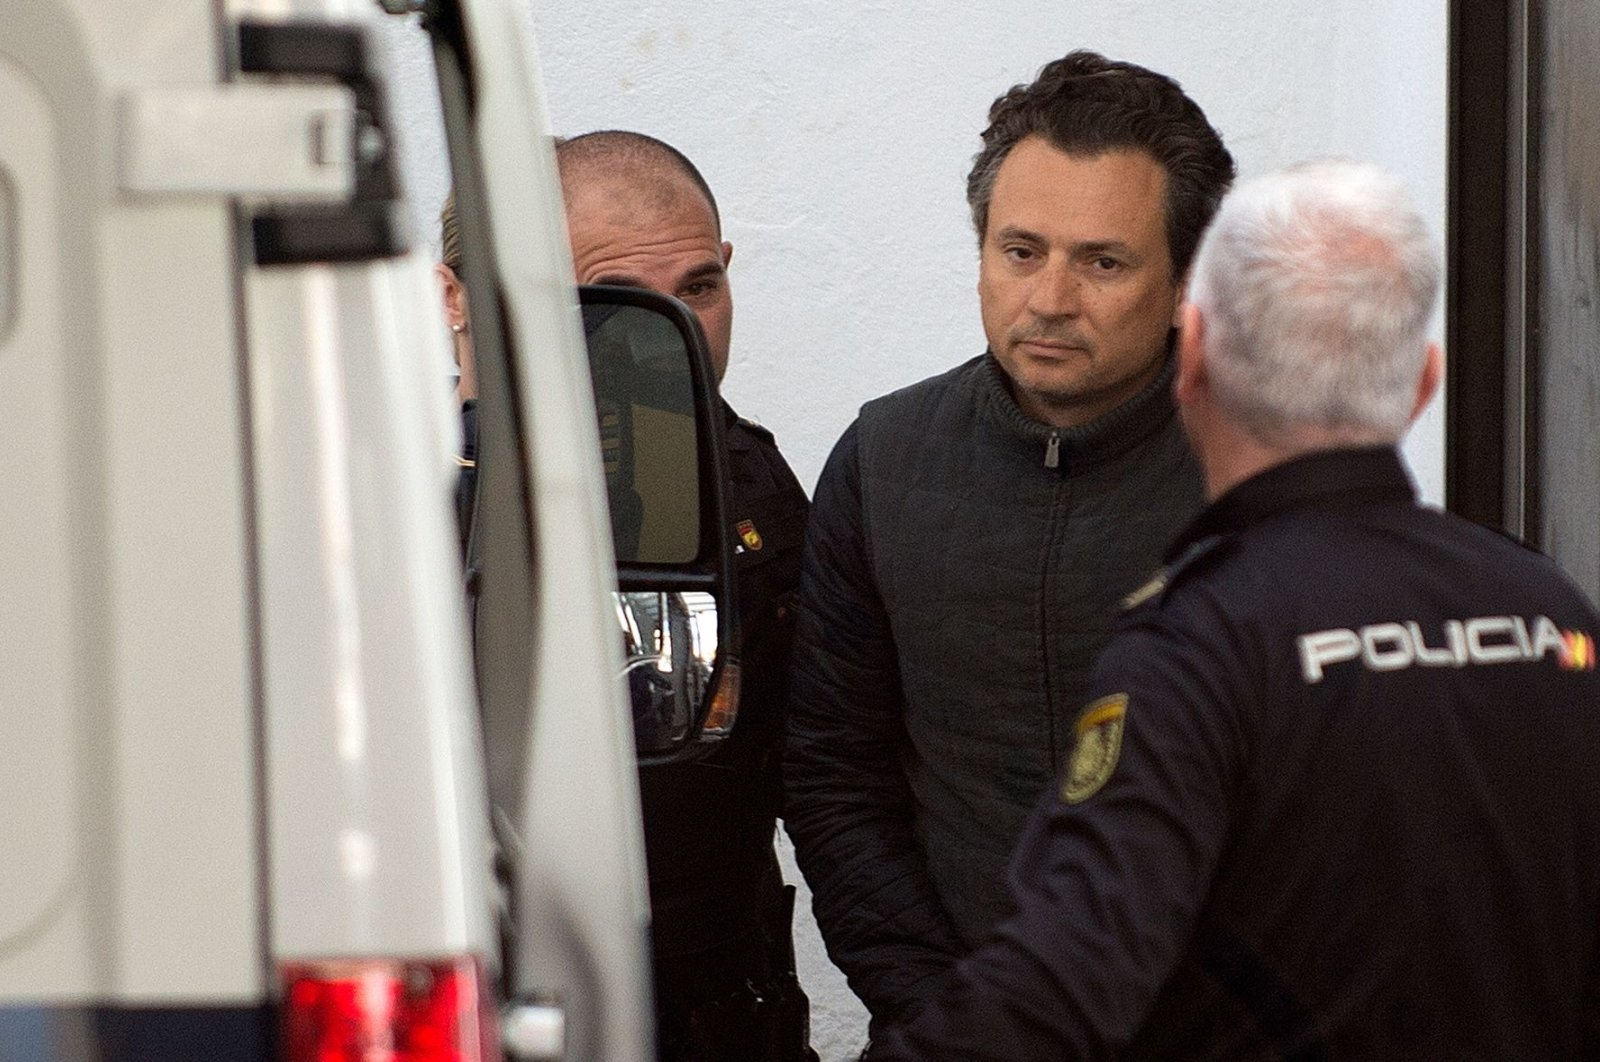 In this file photo taken on Feb. 13, 2020, Emilio Lozoya, former chief executive (2012-2018) of Mexico's state oil company PEMEX, is transferred to a police van in Marbella, Spain. (AFP Photo)